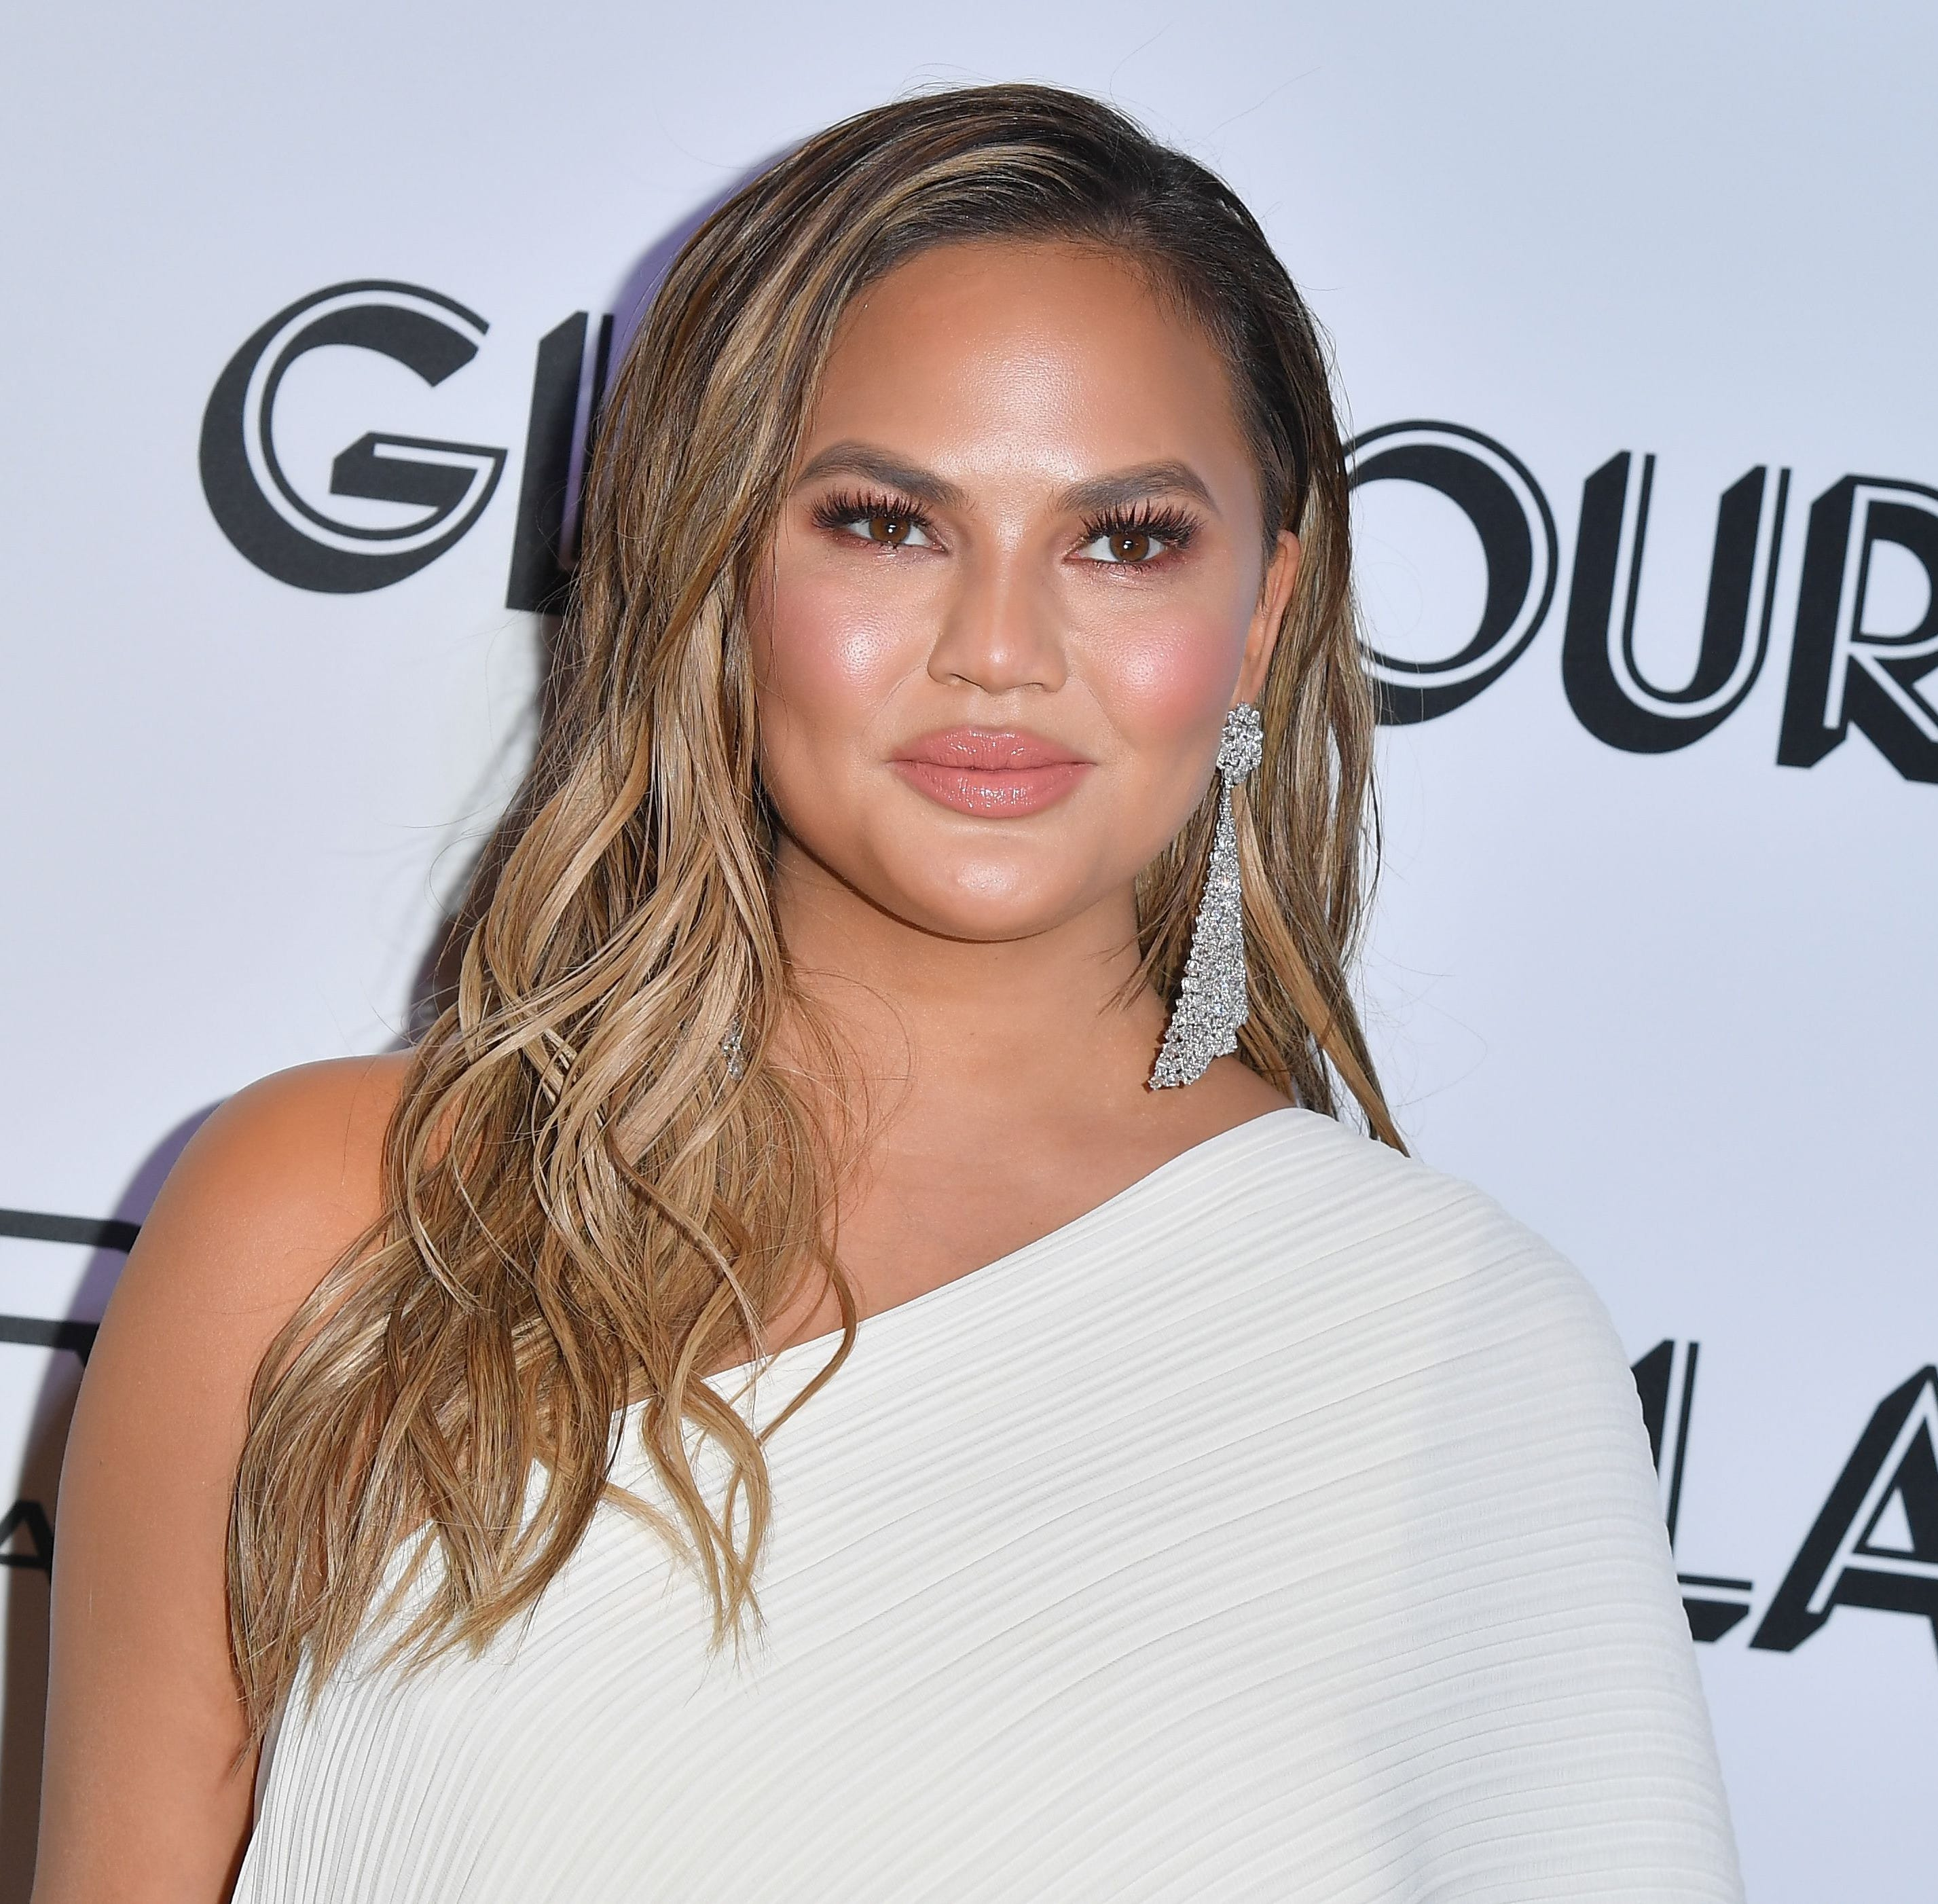 Chrissy Teigen has better things ahead in 2019.